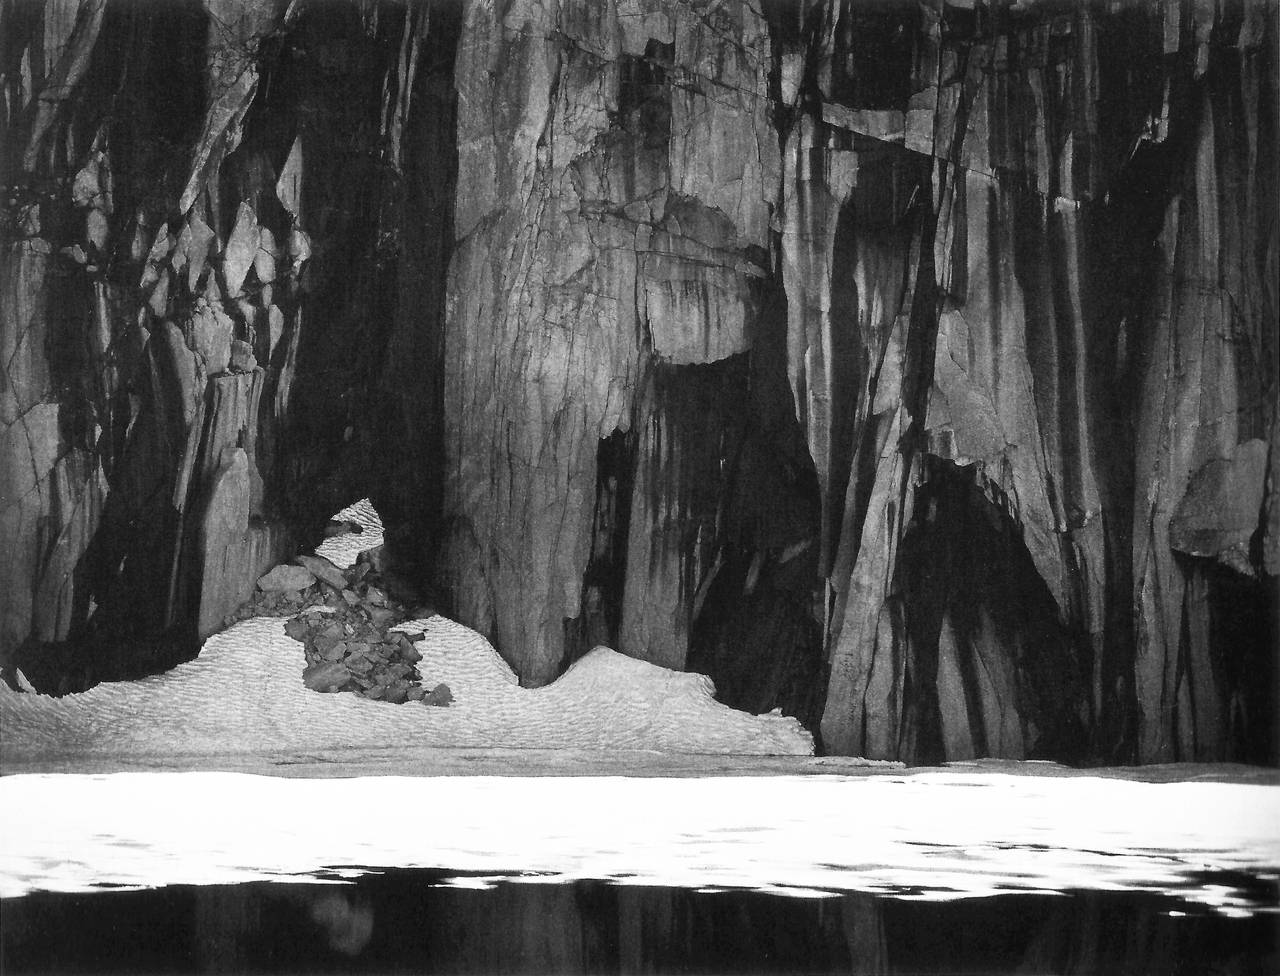 Ansel Adams - Frozen Lake and Cliffs, Sierra Nevada, CA 1